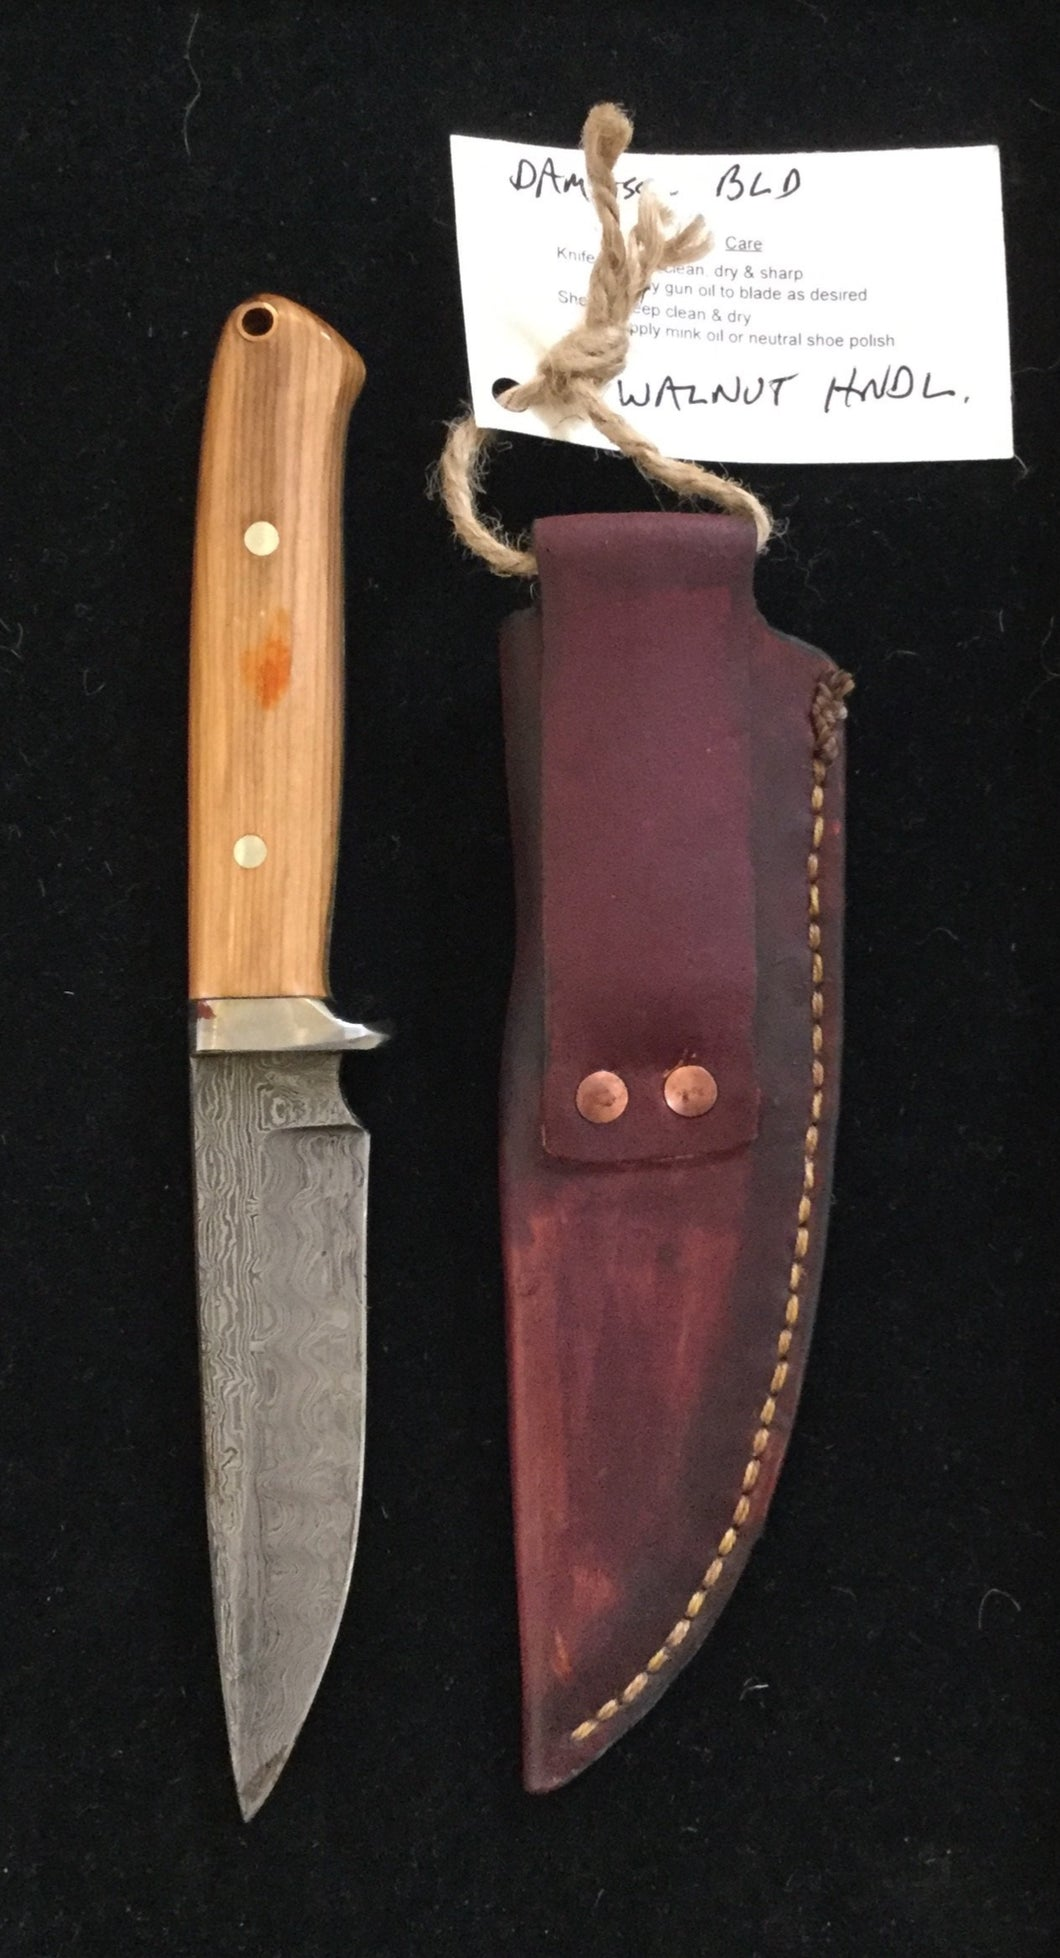 Damascus steel blade, Walnut handle with finger guard BH2028 - Knife - Cerrillos Station | Fine Art Gallery, Native American Jewelry & Shop